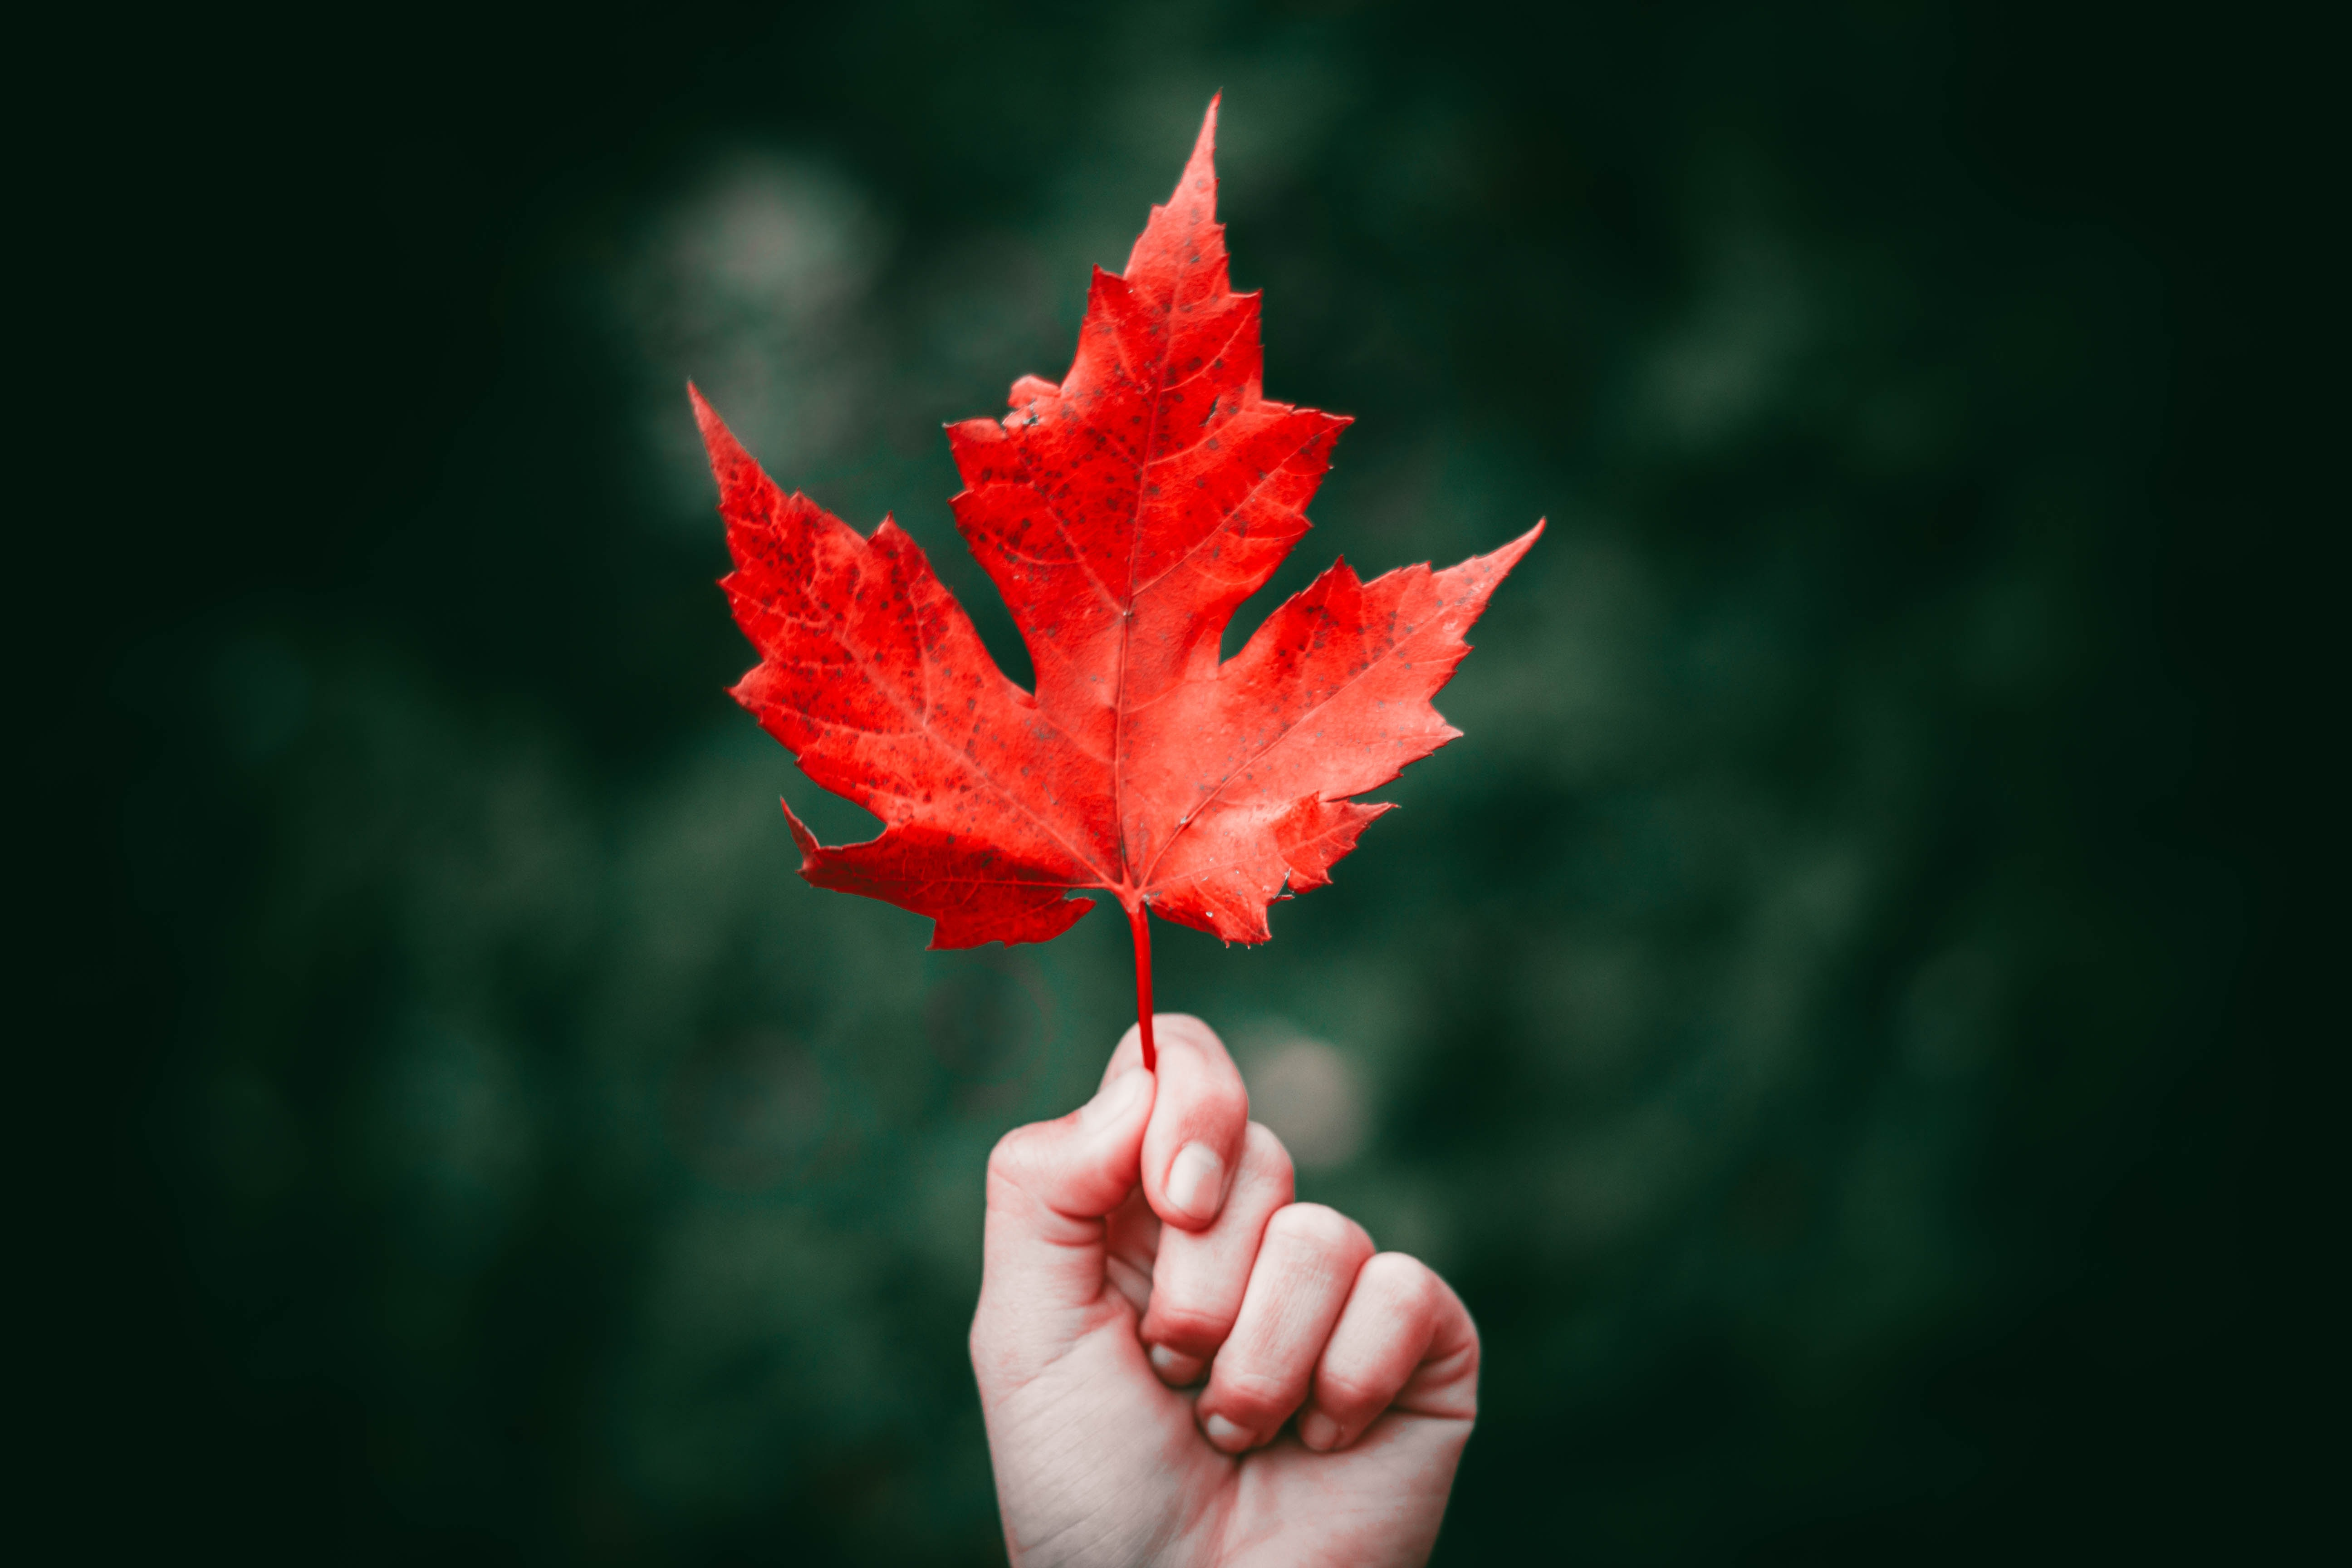 hand holding red leaf against green leafy background